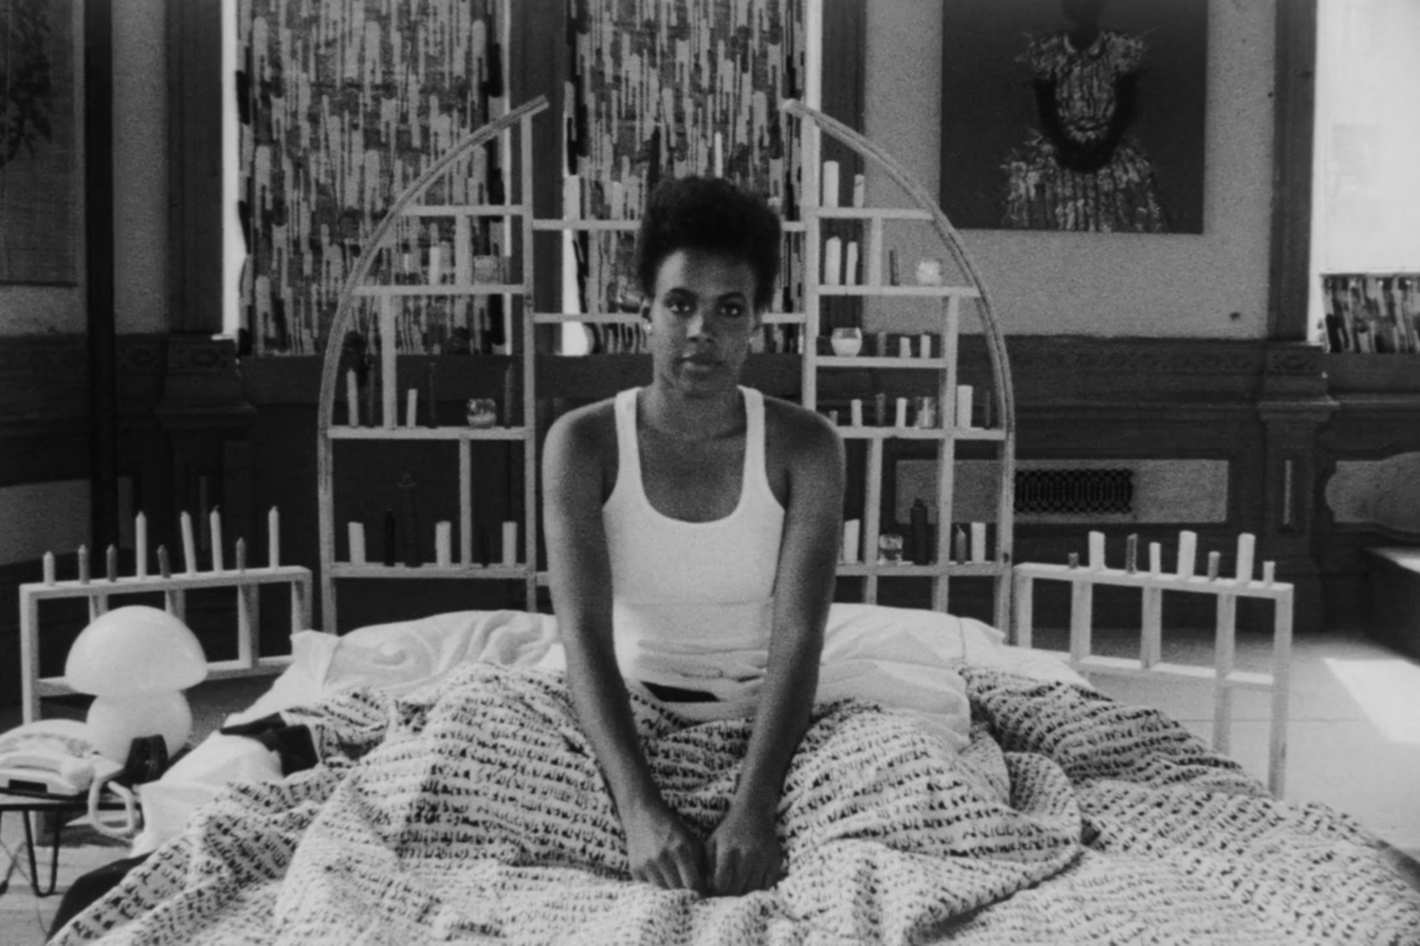 Tracy Camilla Johns nei panni di Nola Darling nel cortometraggio Lola Darling (Spike Lee, 1986)